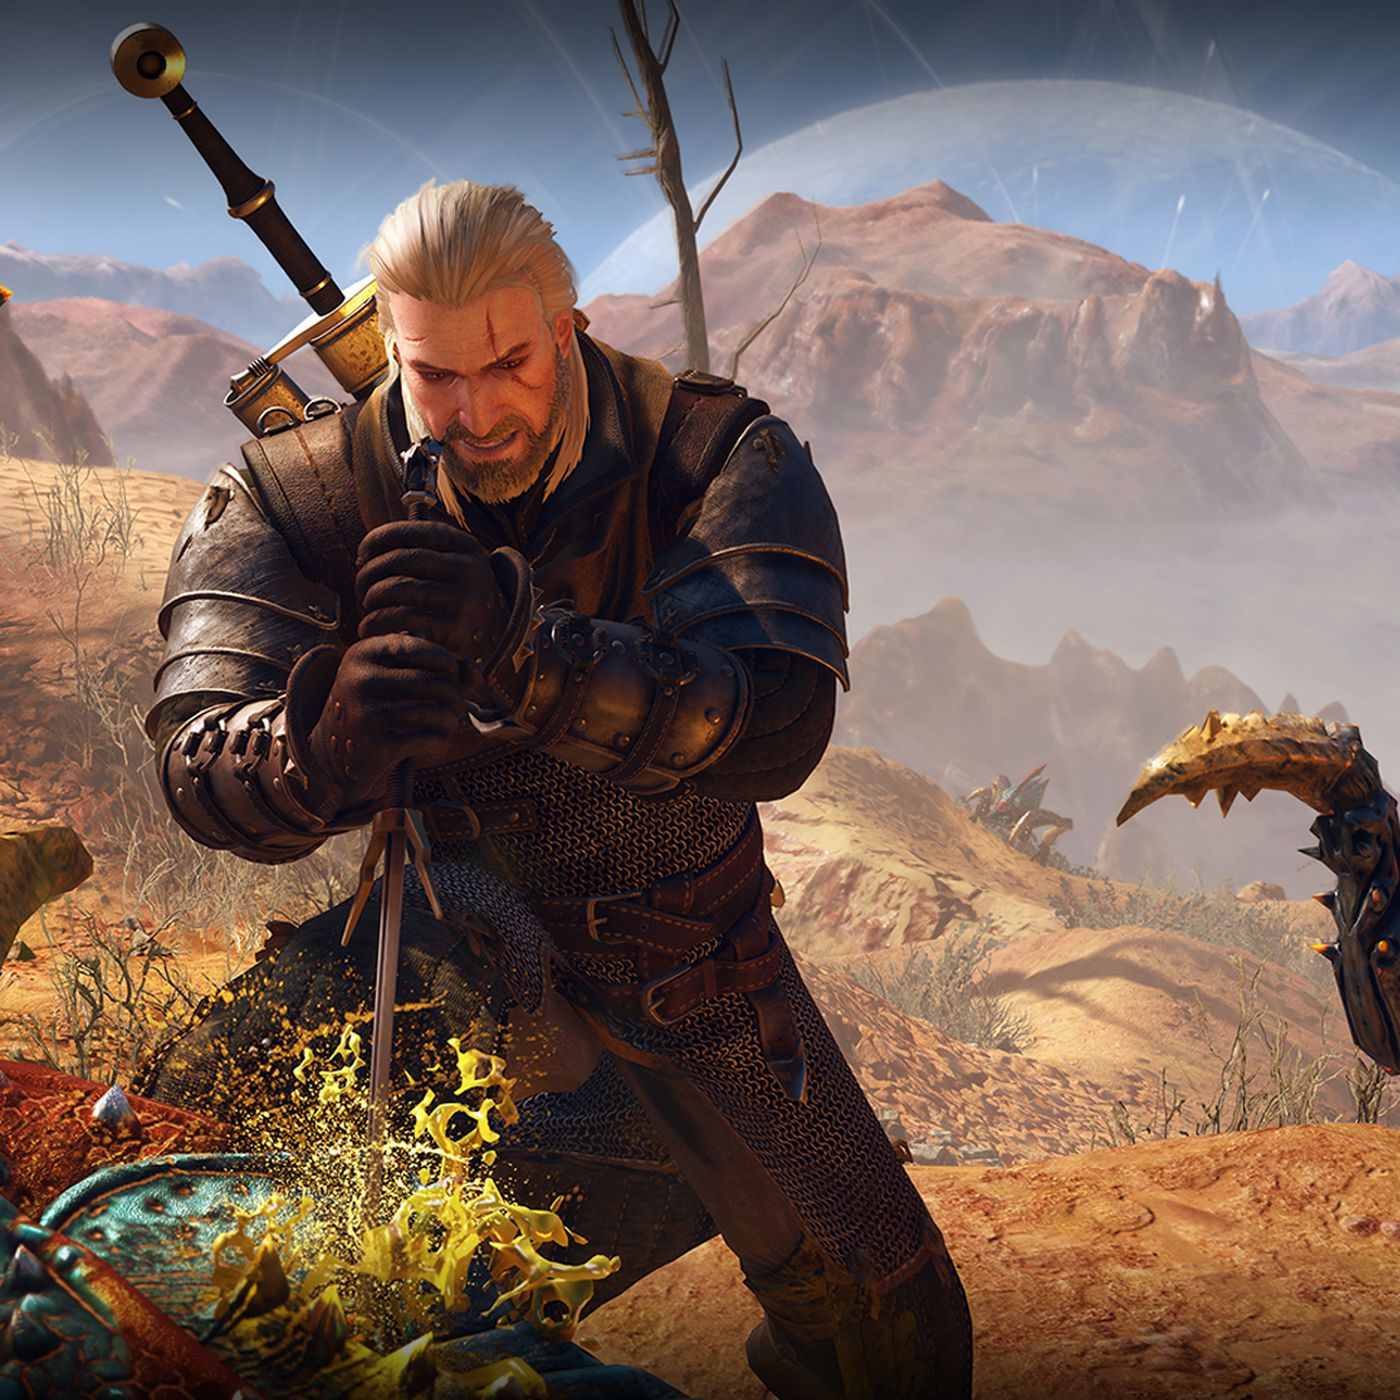 The Witcher 3 S Xbox One X Update Adds 60 Fps Support And It S